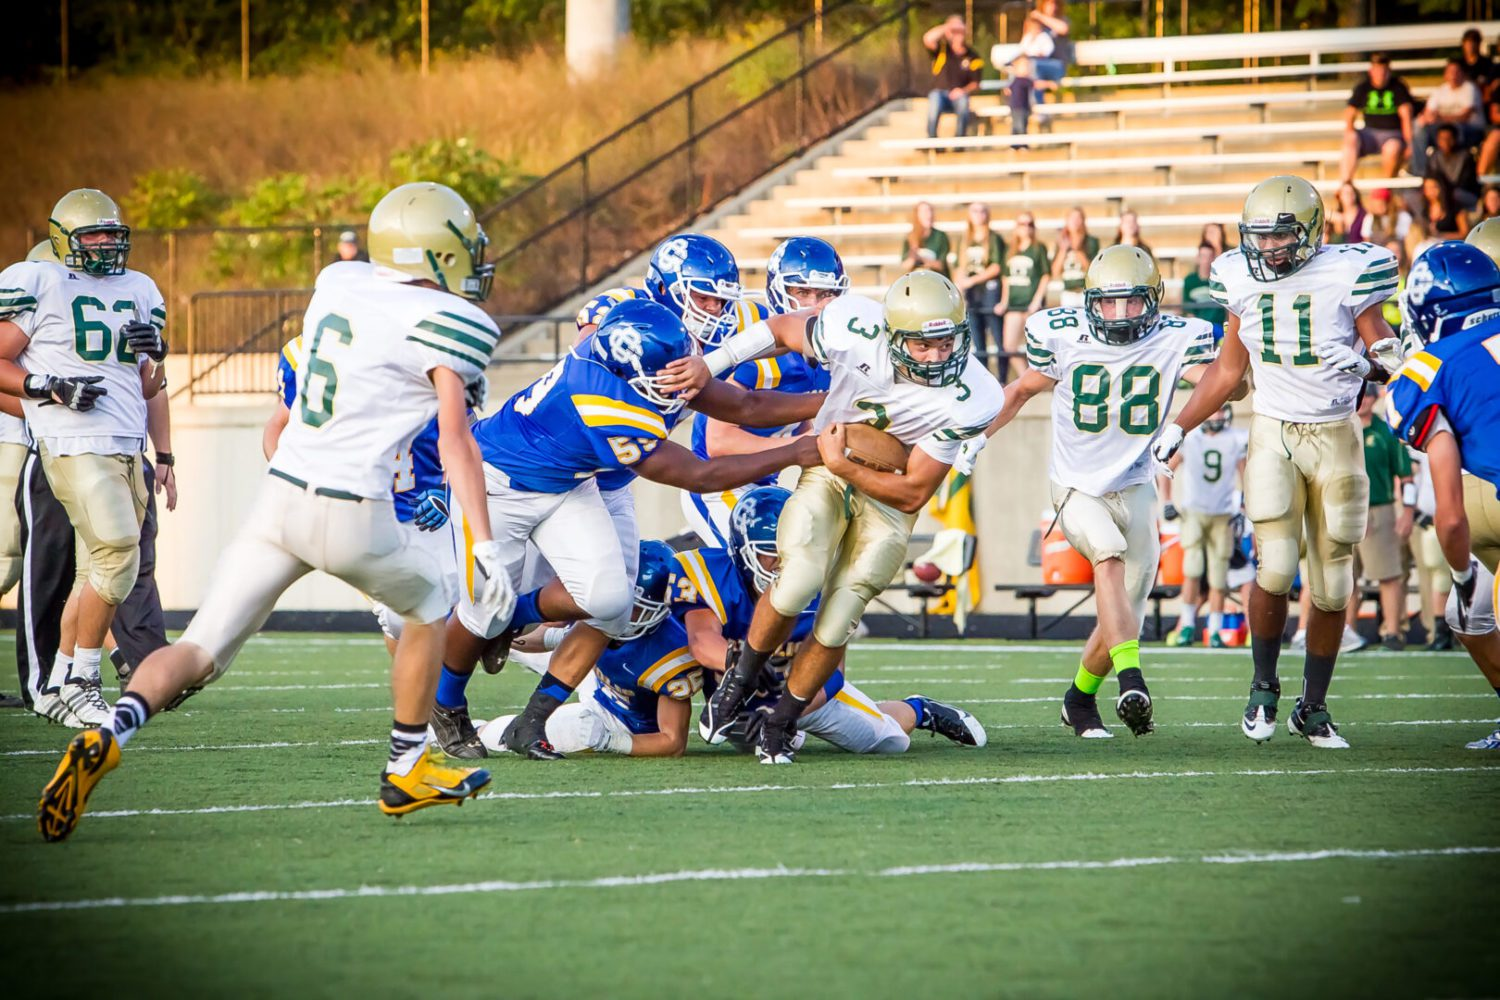 MCC Crusaders take on Fulton in Round 1 of playoffs in first-ever gridiron meeting